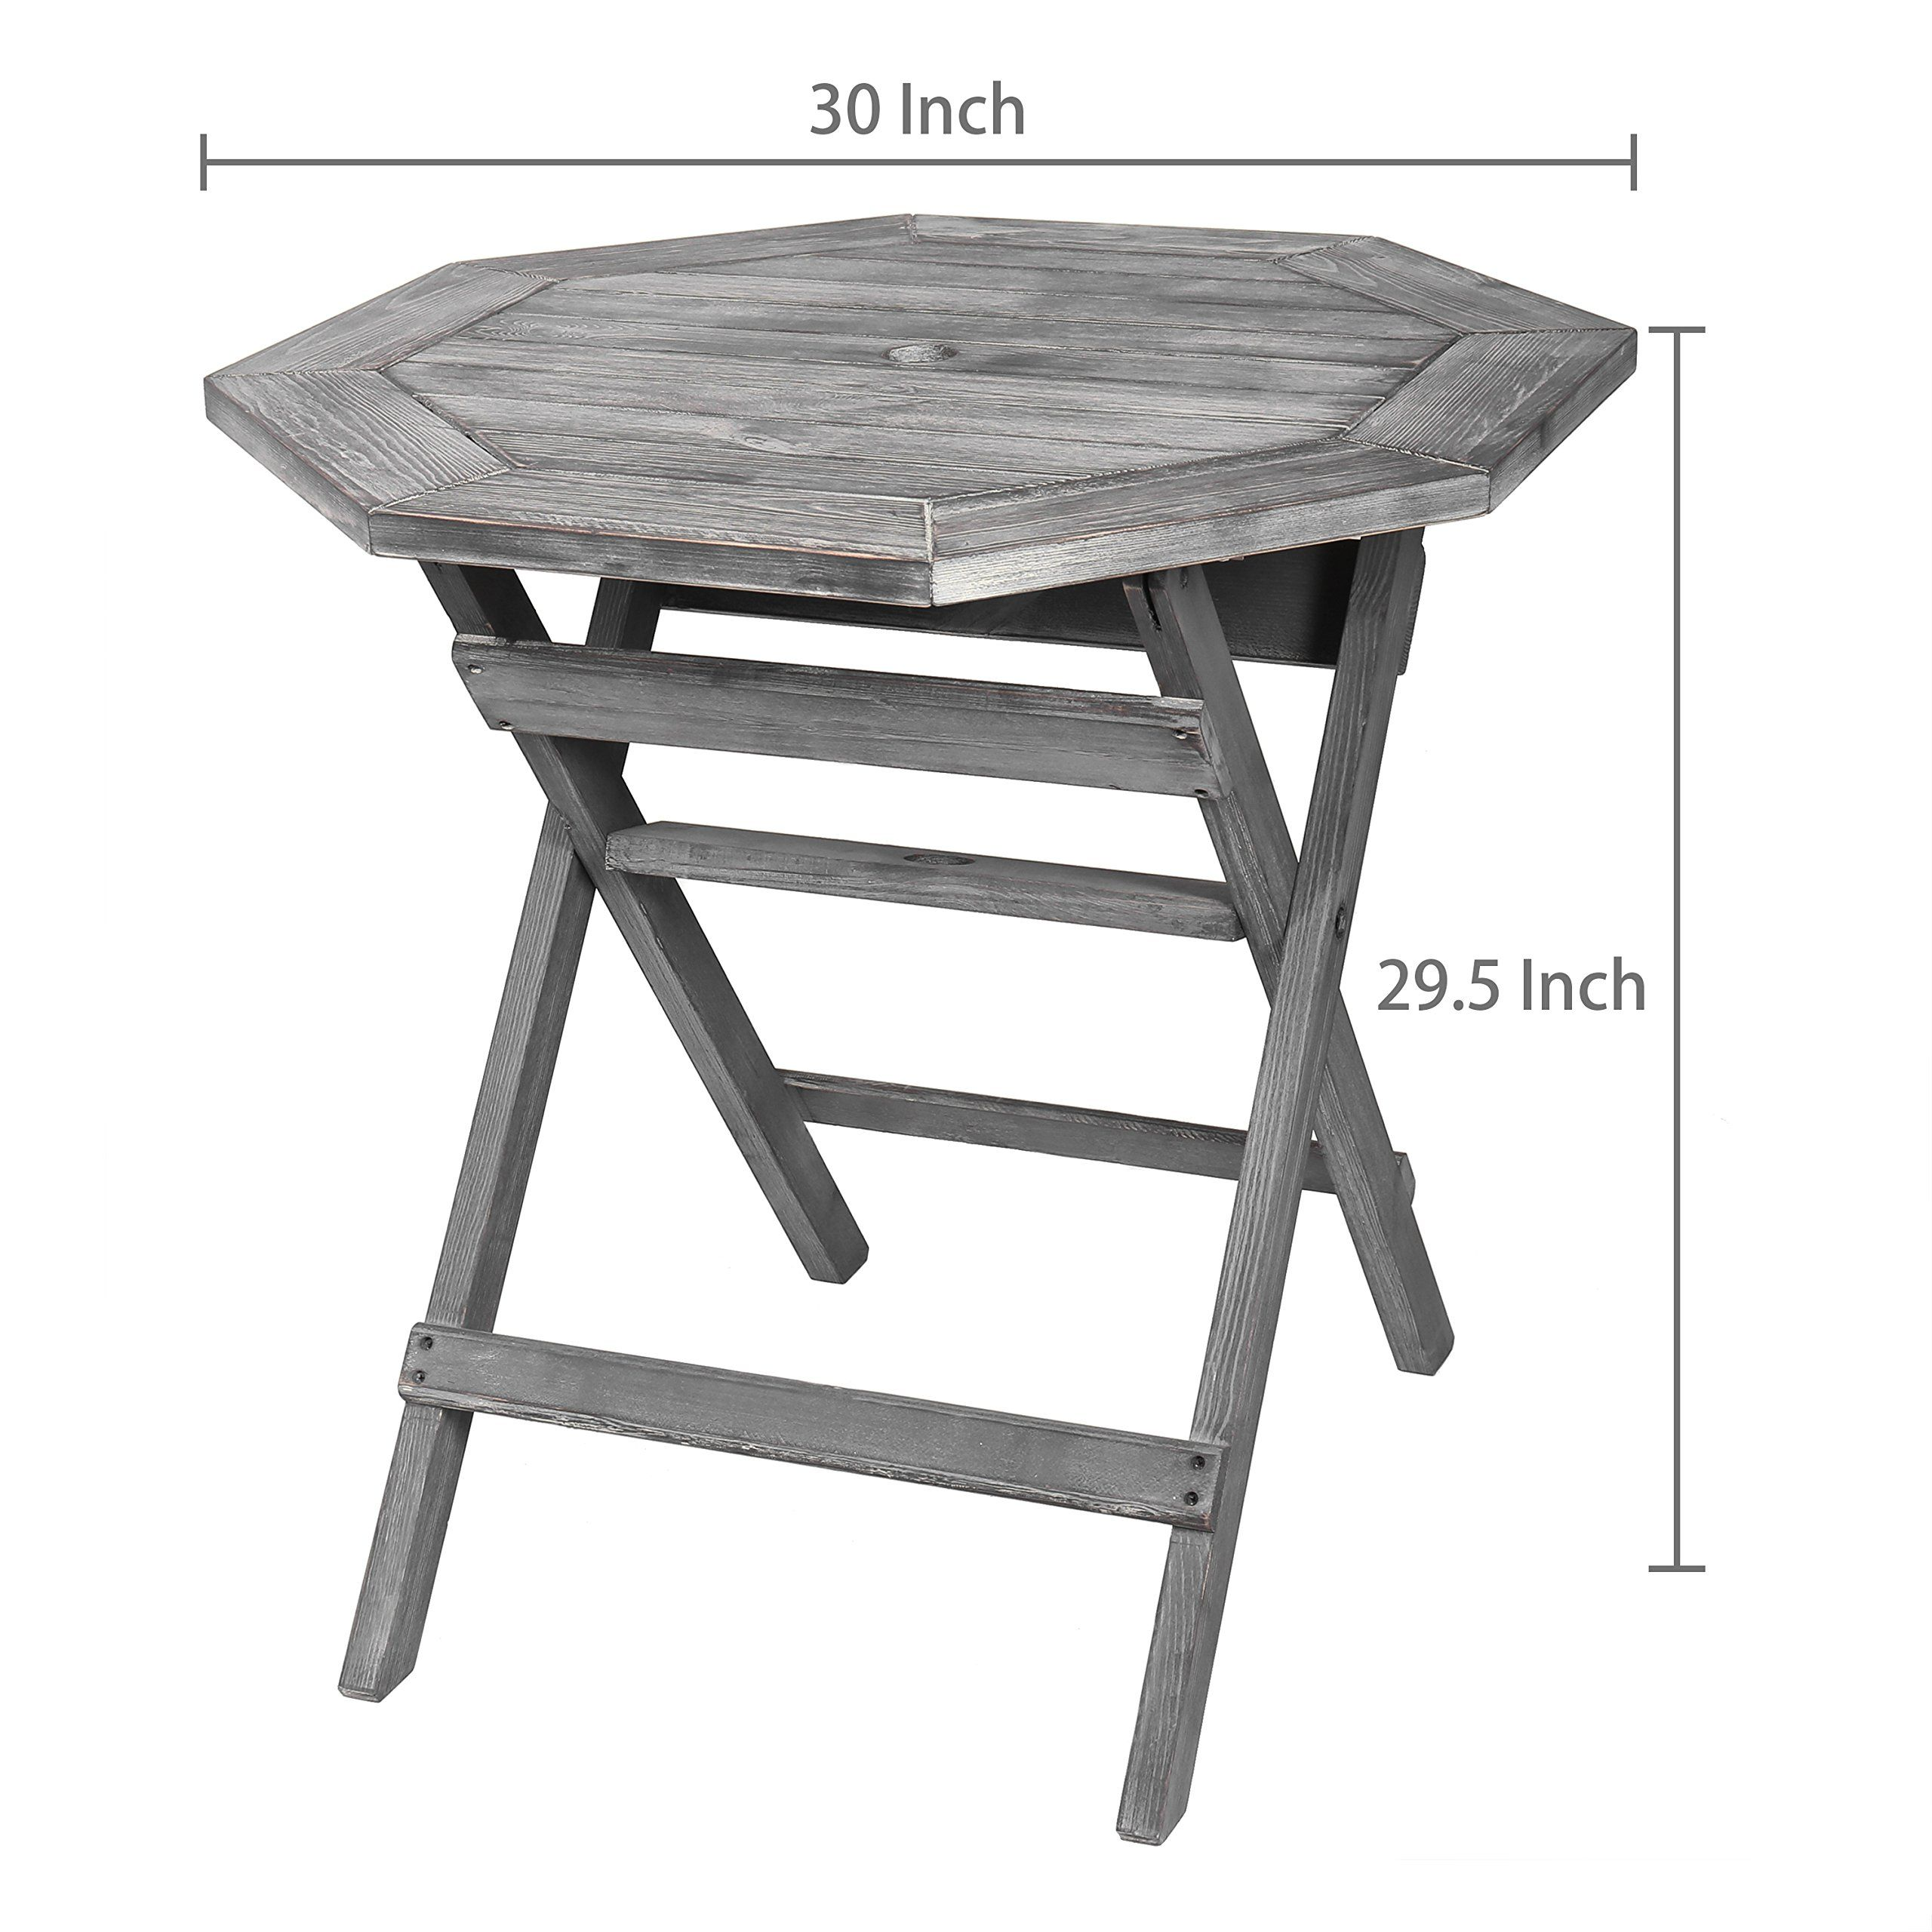 rustic barnwood gray pine wood folding octagonal patio accent bistro white table with umbrella hole screw wooden legs ashley furniture metal nesting tables classic bedroom